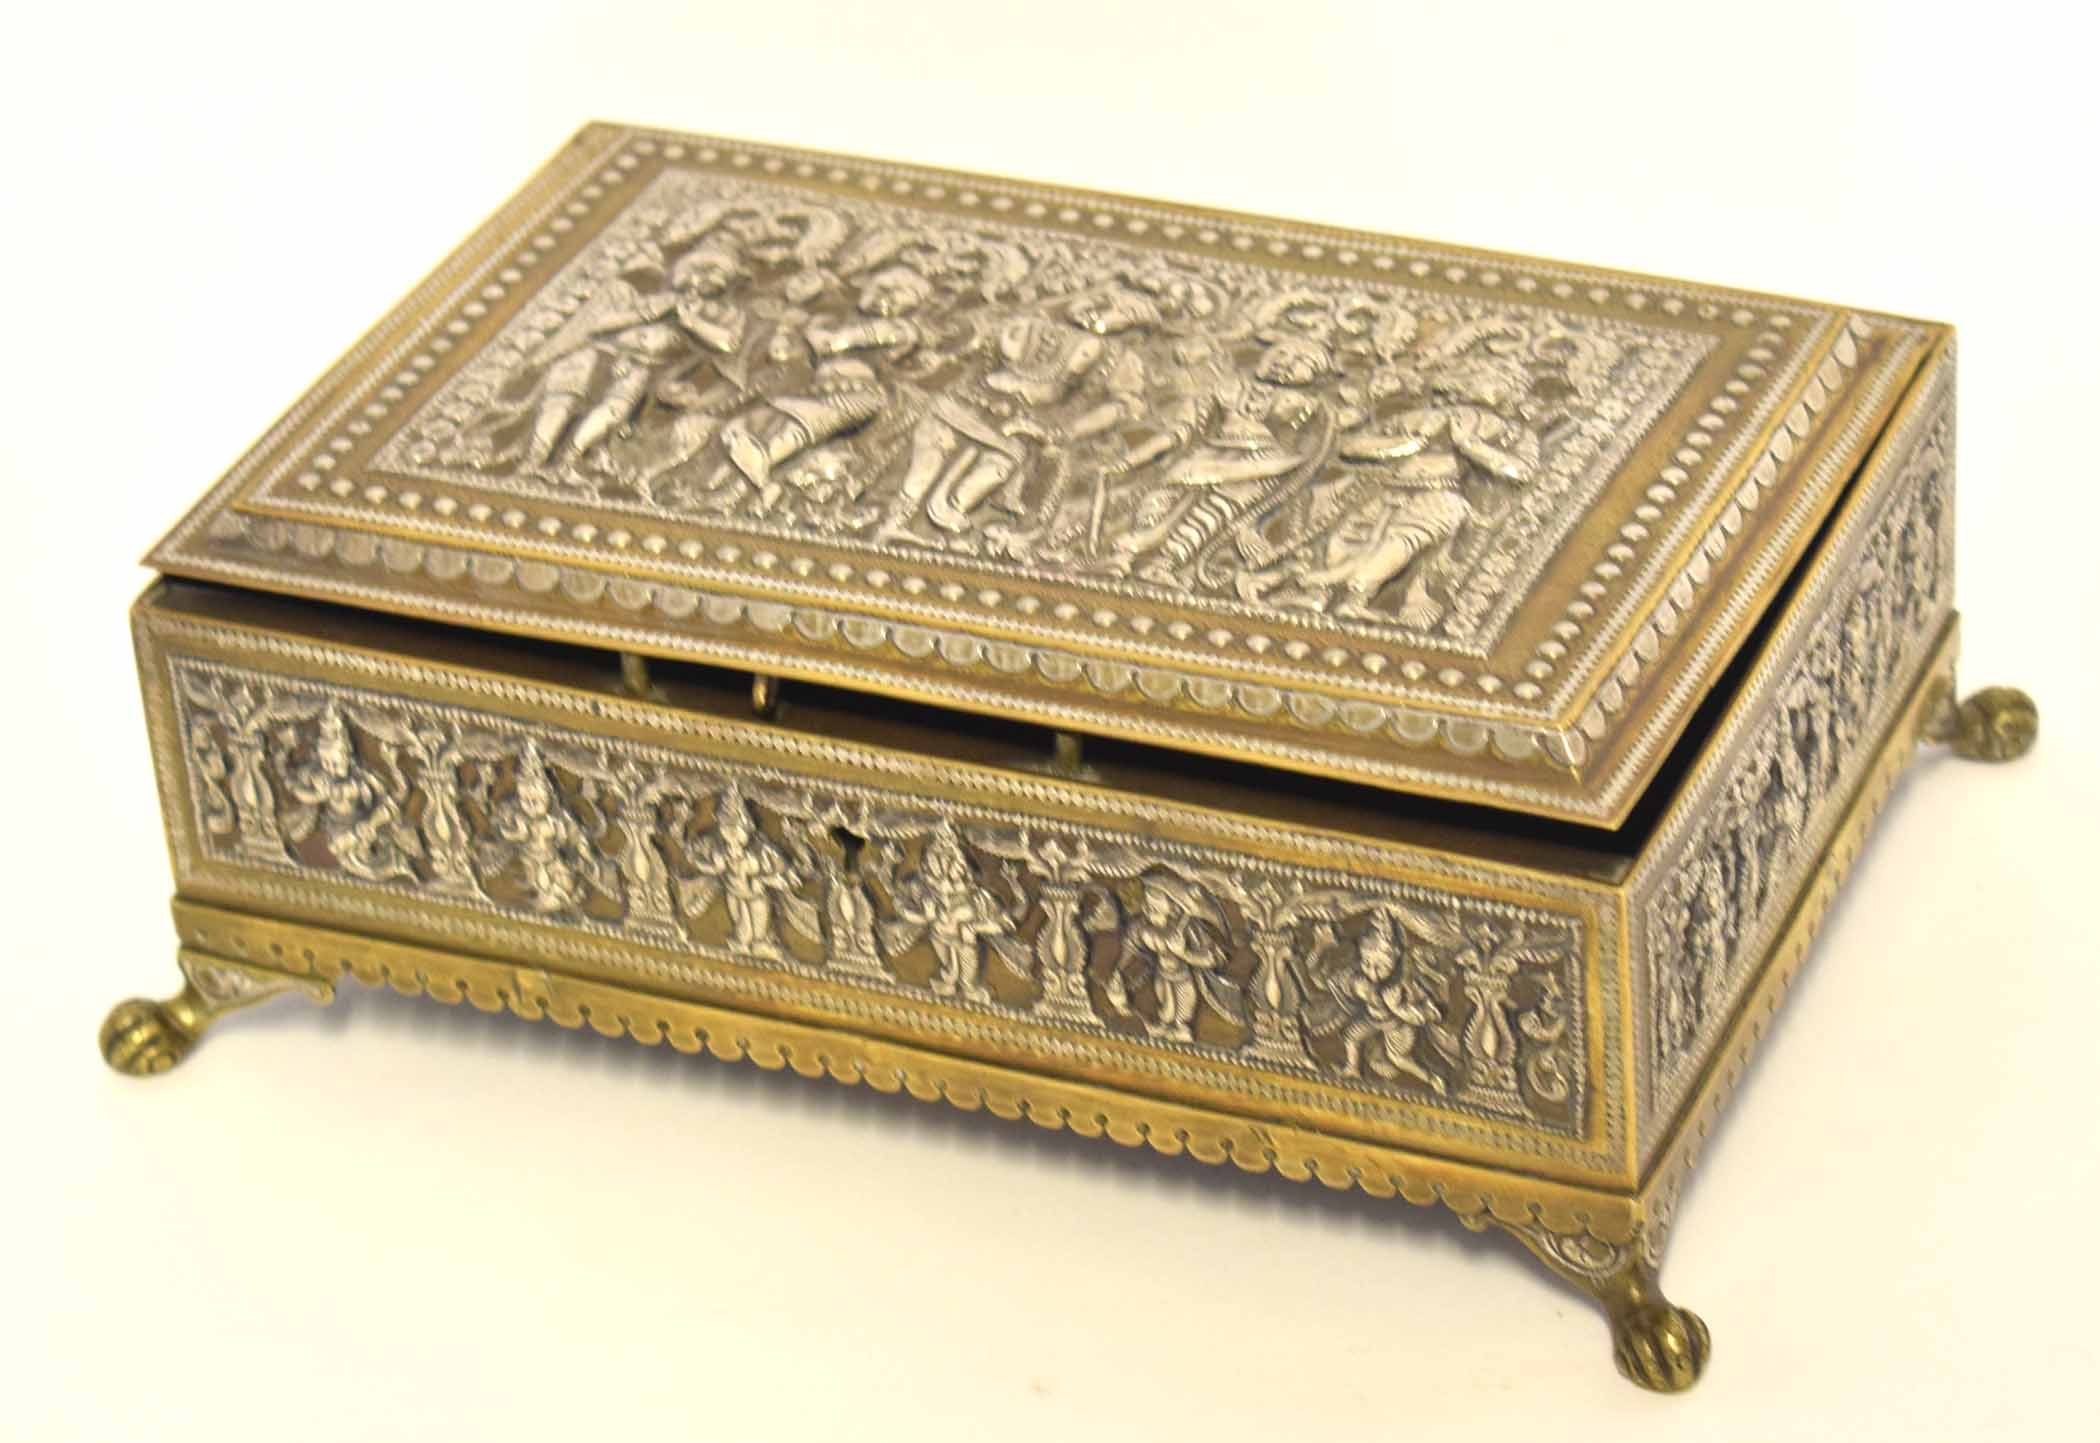 Lot 27 - Indian white metal casket on four paw feet with various Hindu deities modelled in relief to the